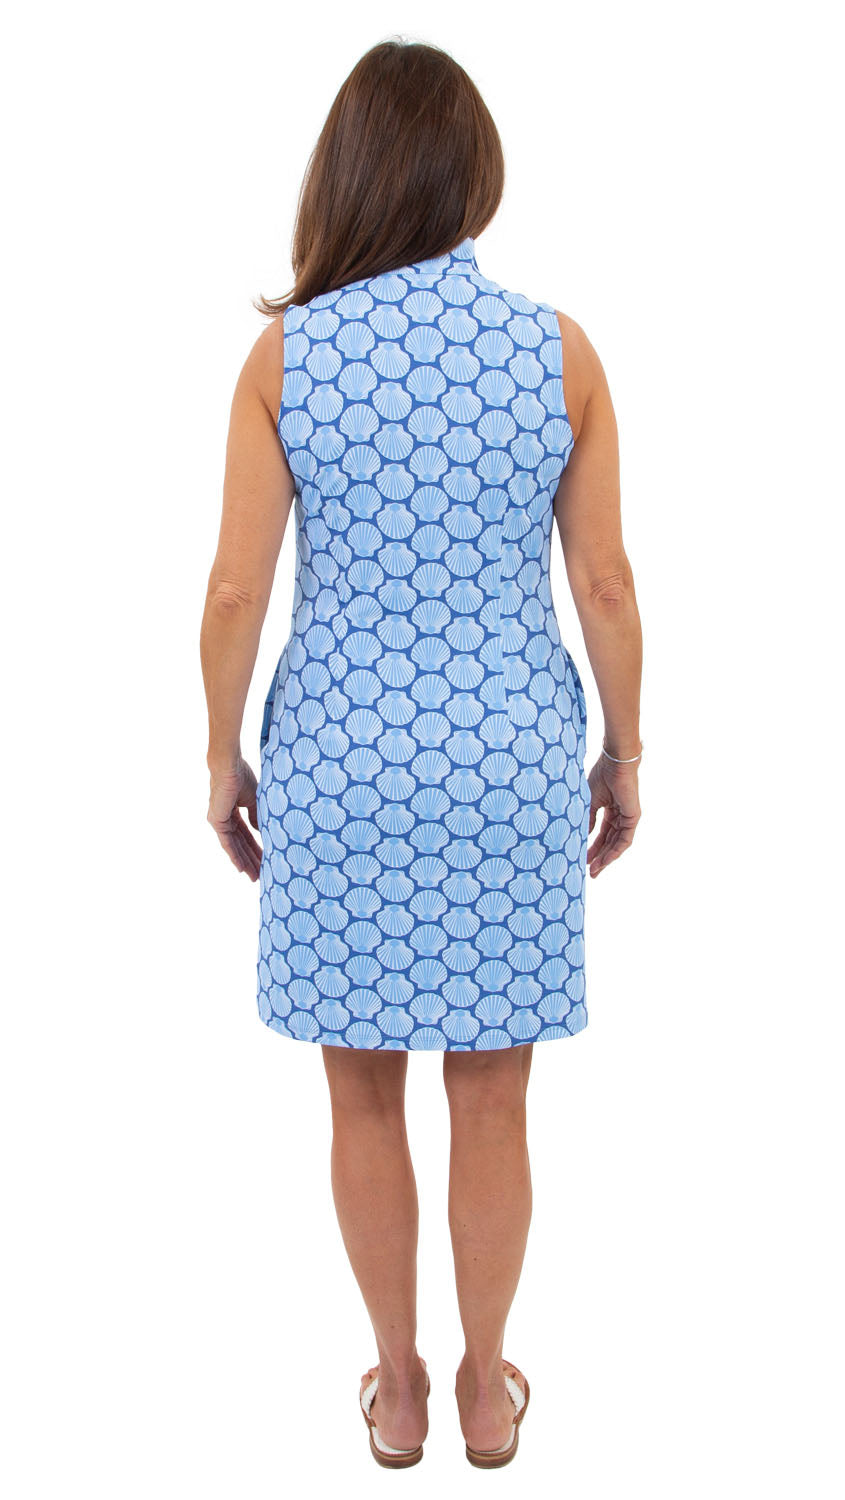 Britt Sleeveless Dress - Navy/Azure Baked Scallops